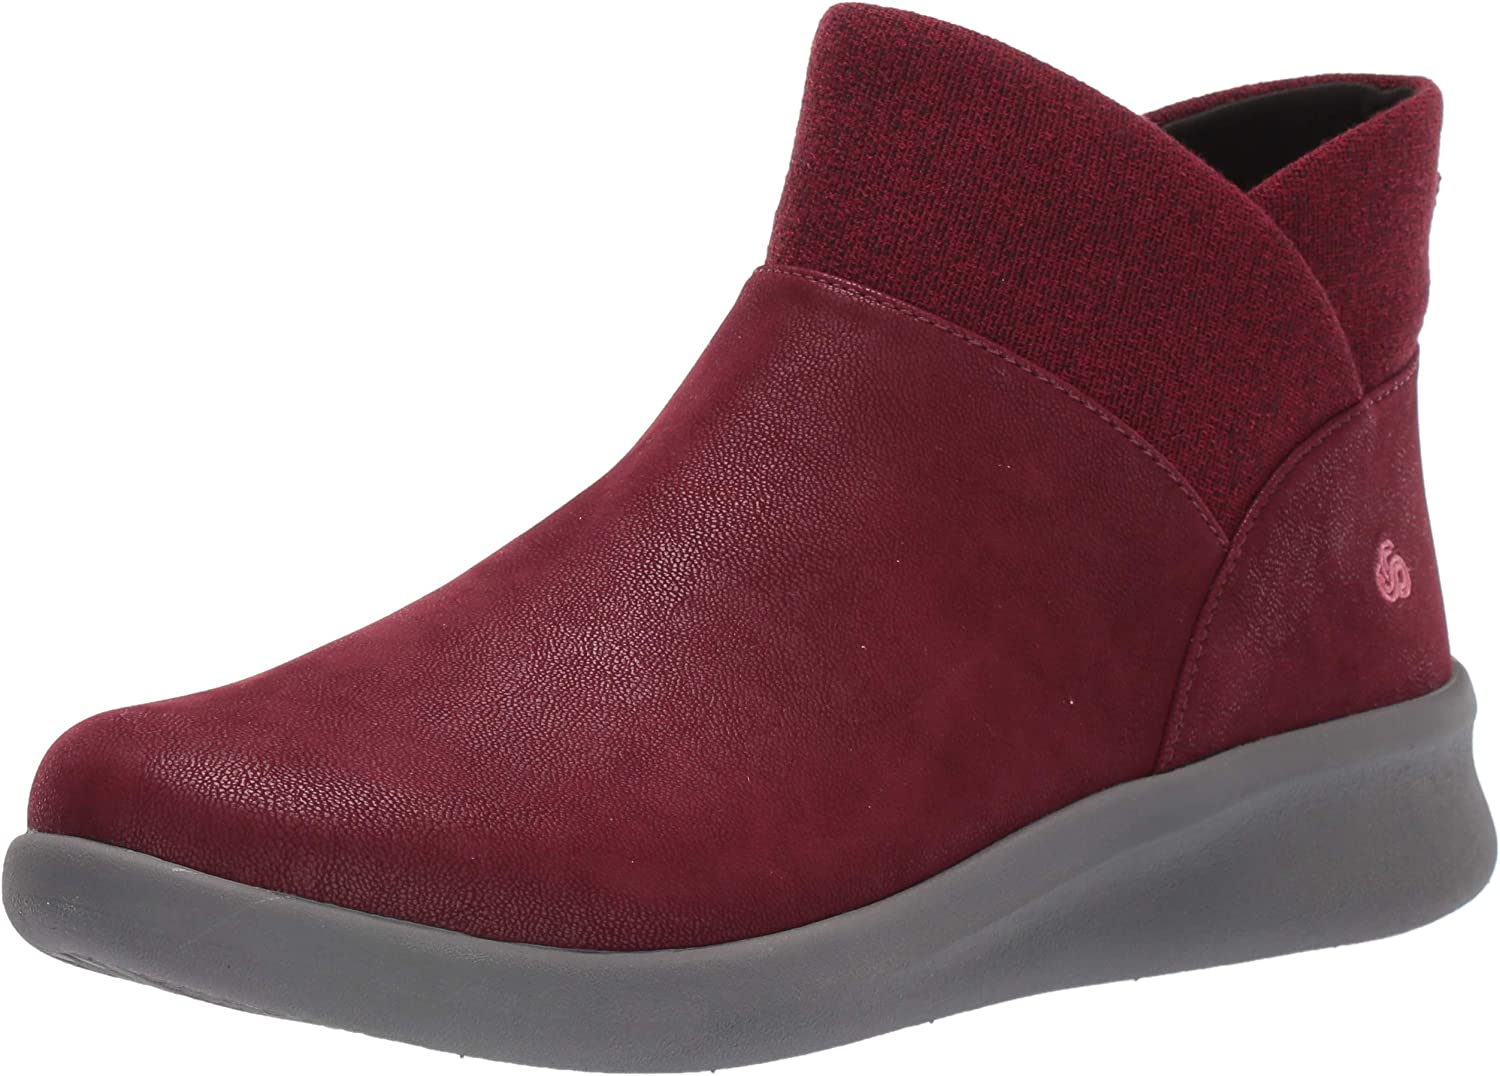 Clarks Sillian Finally popular brand Be super welcome 2.0 Ankle Women's Boot